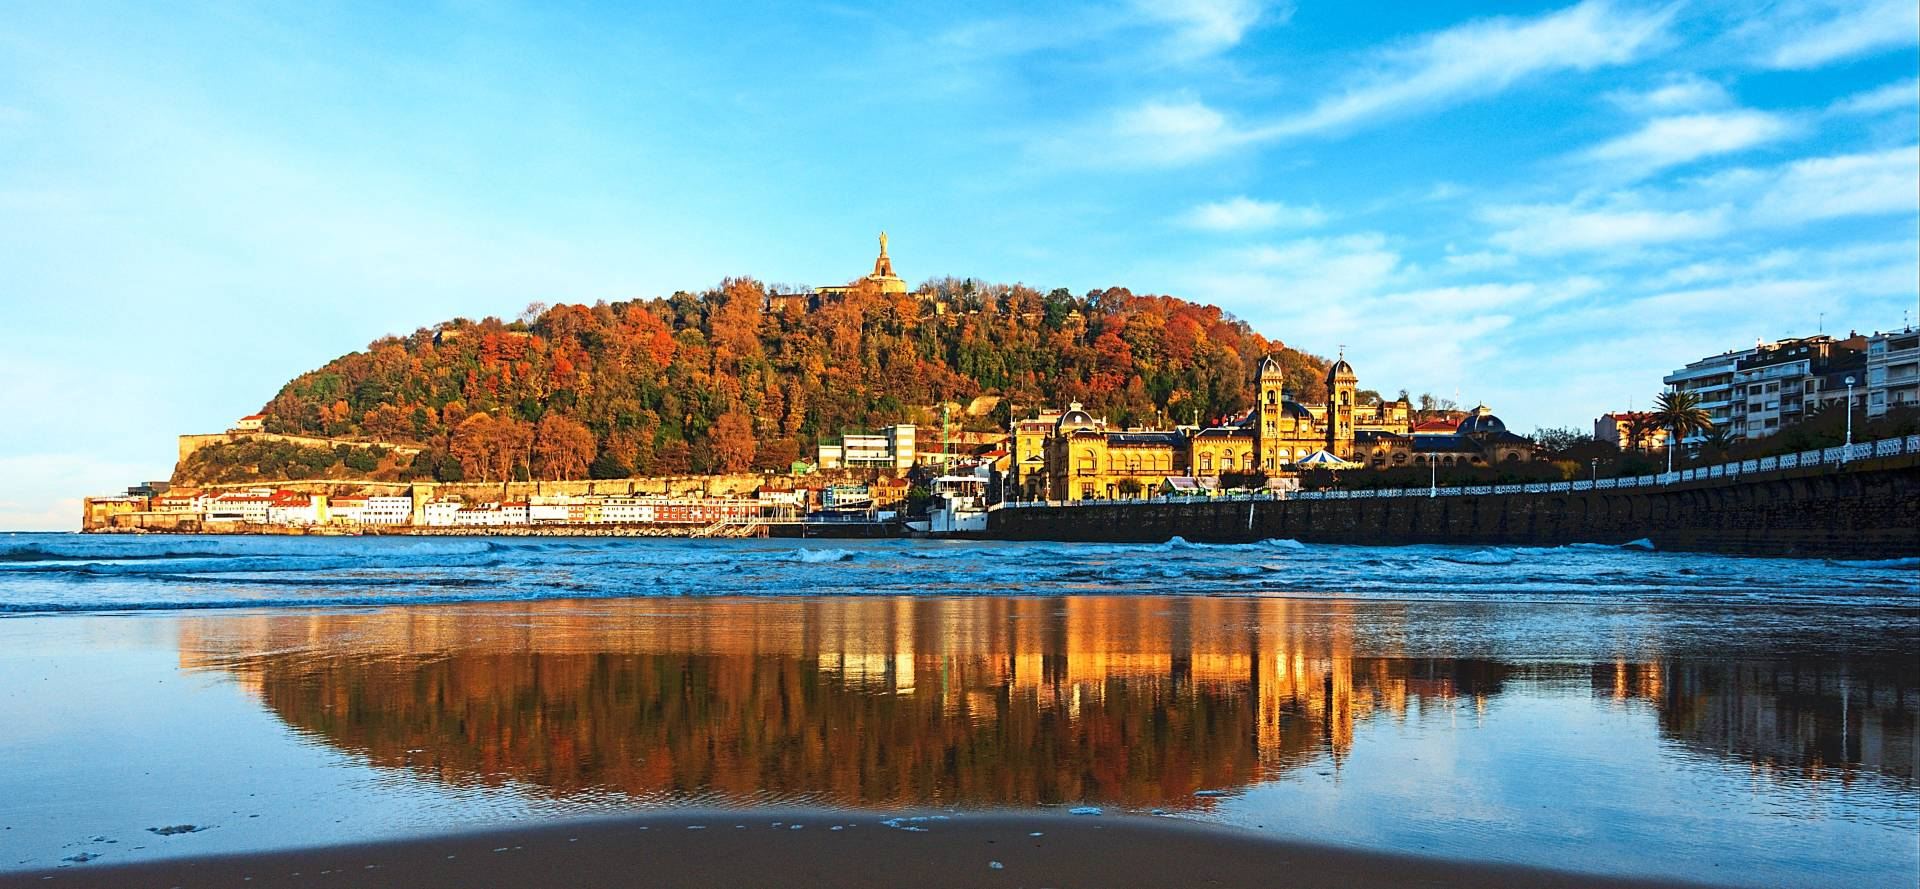 San Sebastian is often called the gastronomy capital of the world because of the number of Michelin-starred restaurants it hosts.